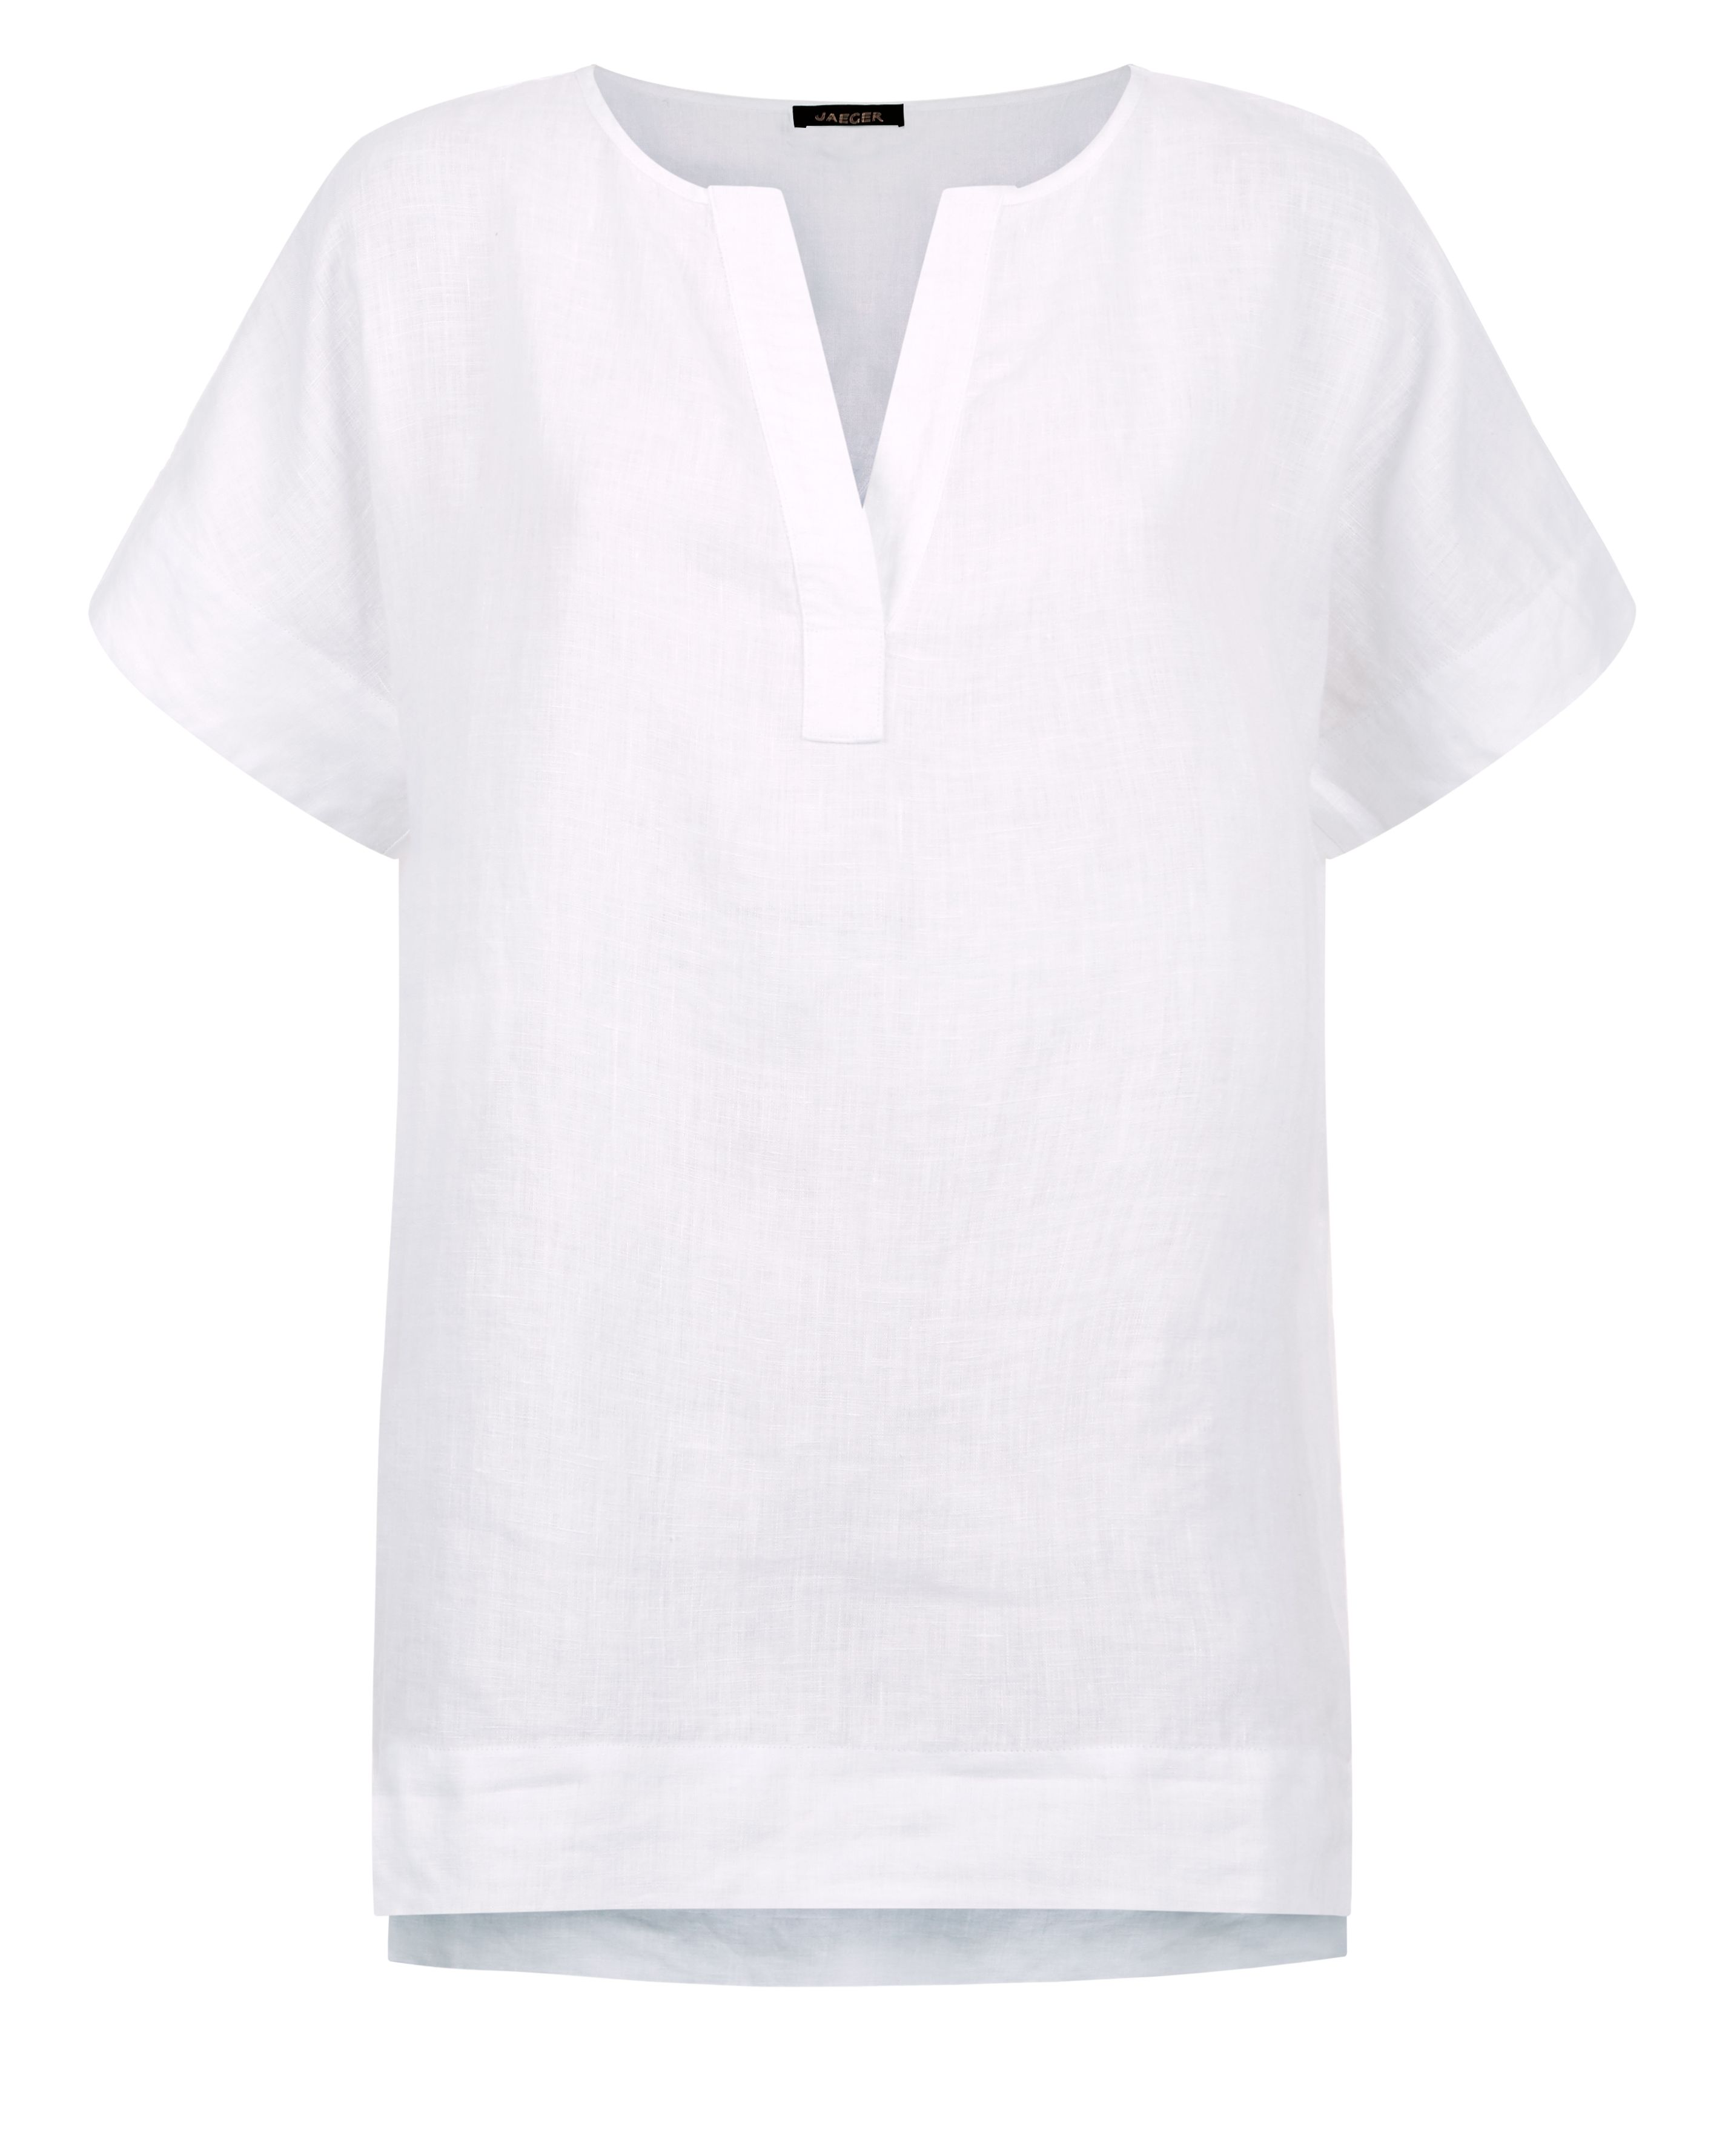 Jaeger Linen Split Sleeve T-Shirt, White